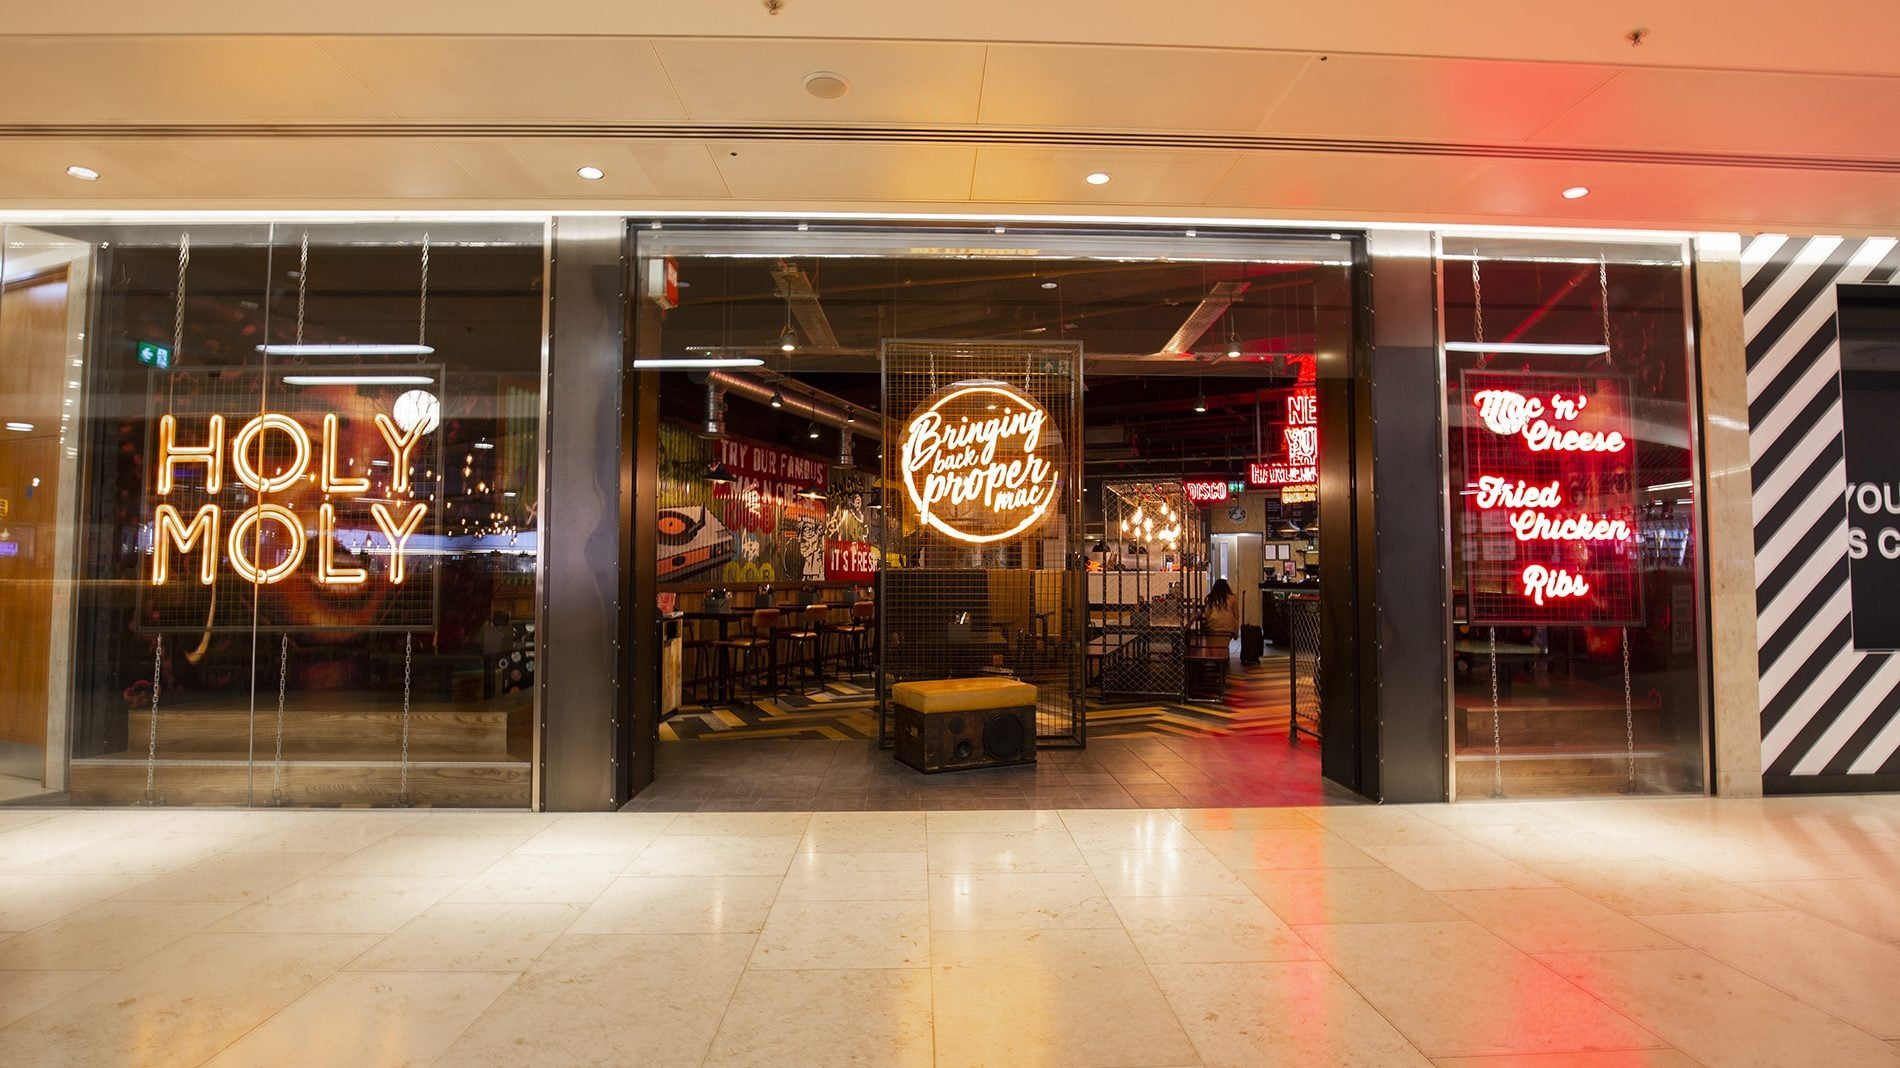 Store front of Holy Moly with illuminated signs